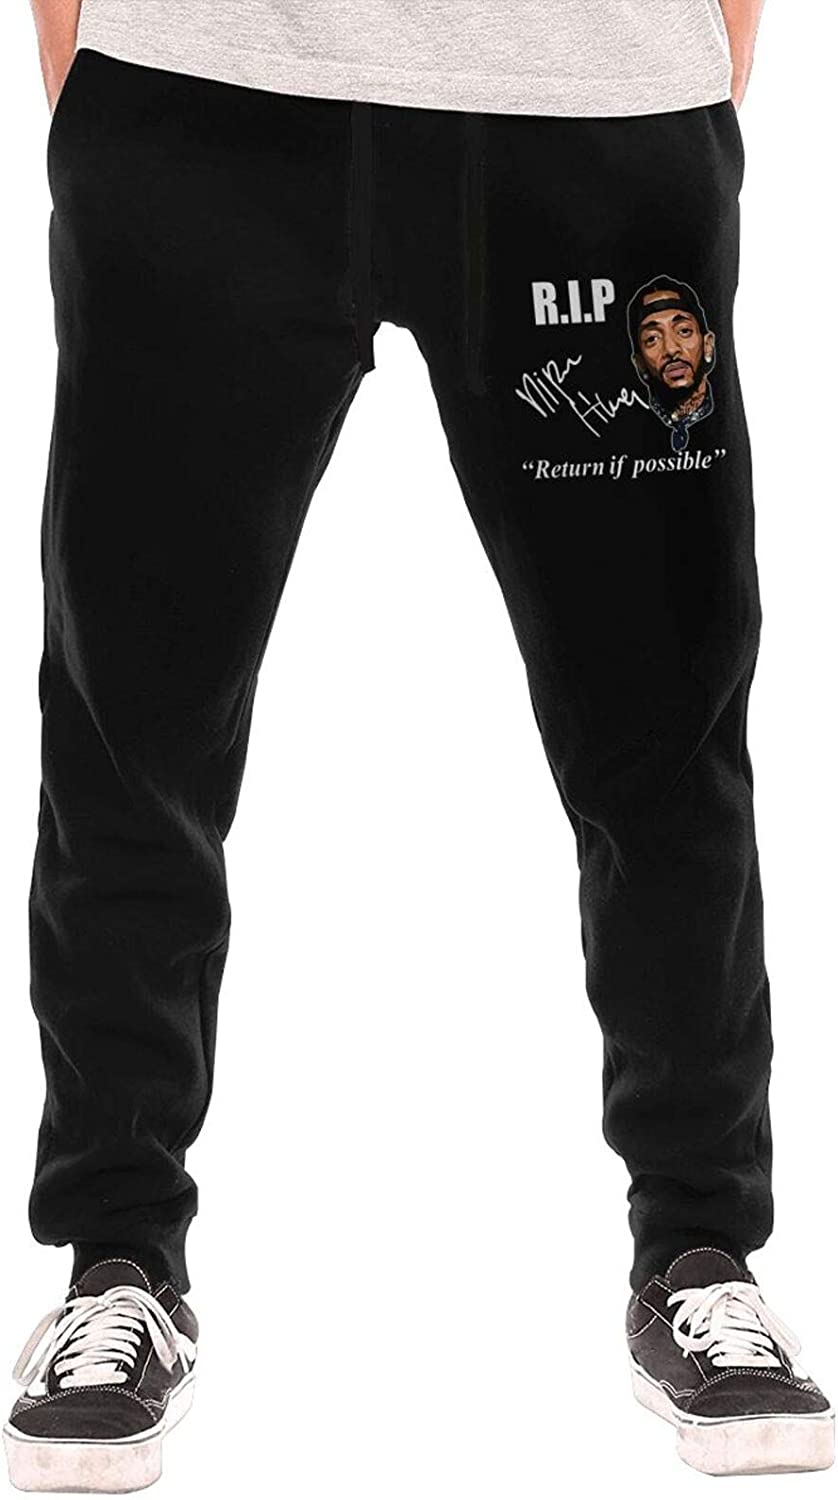 ZJLANS Large special price !! Rip Ni-Psey Huss-Le Return If F Men's Possible Pants Long Gorgeous